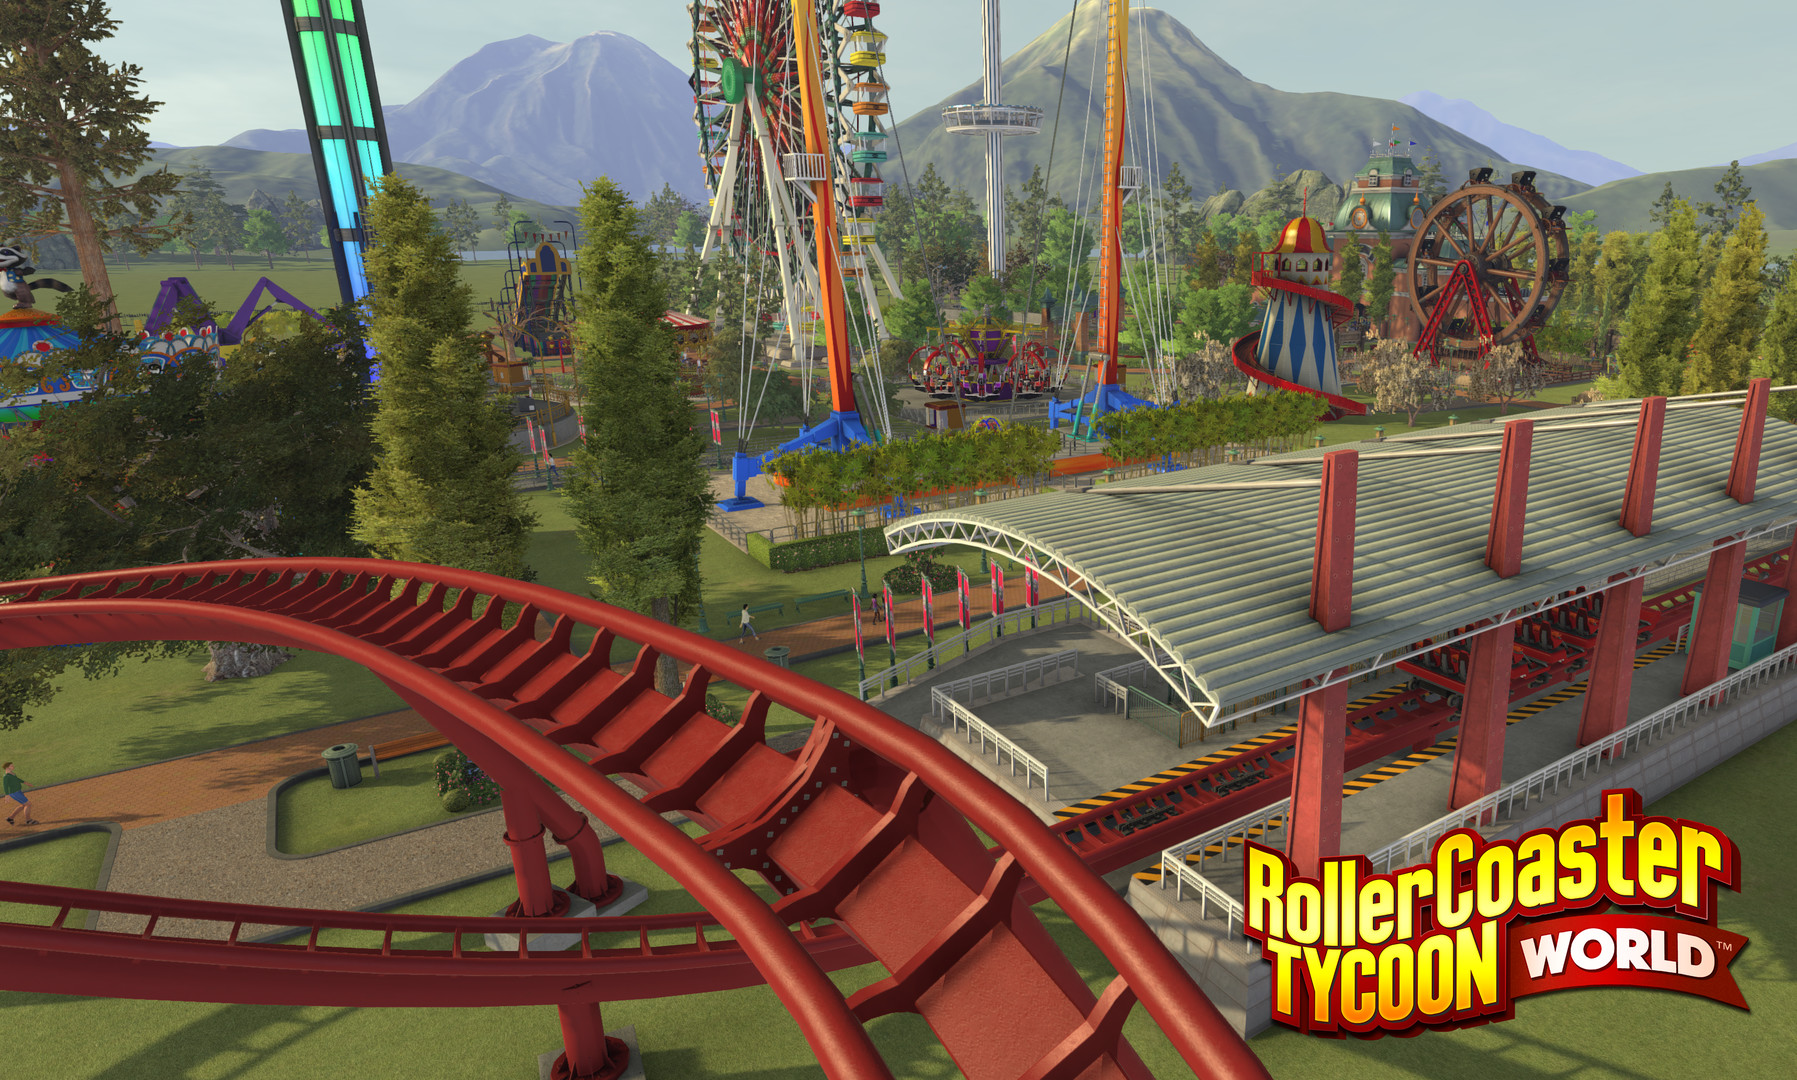 RollerCoaster Tycoon World Delay, Refunds, Early Access